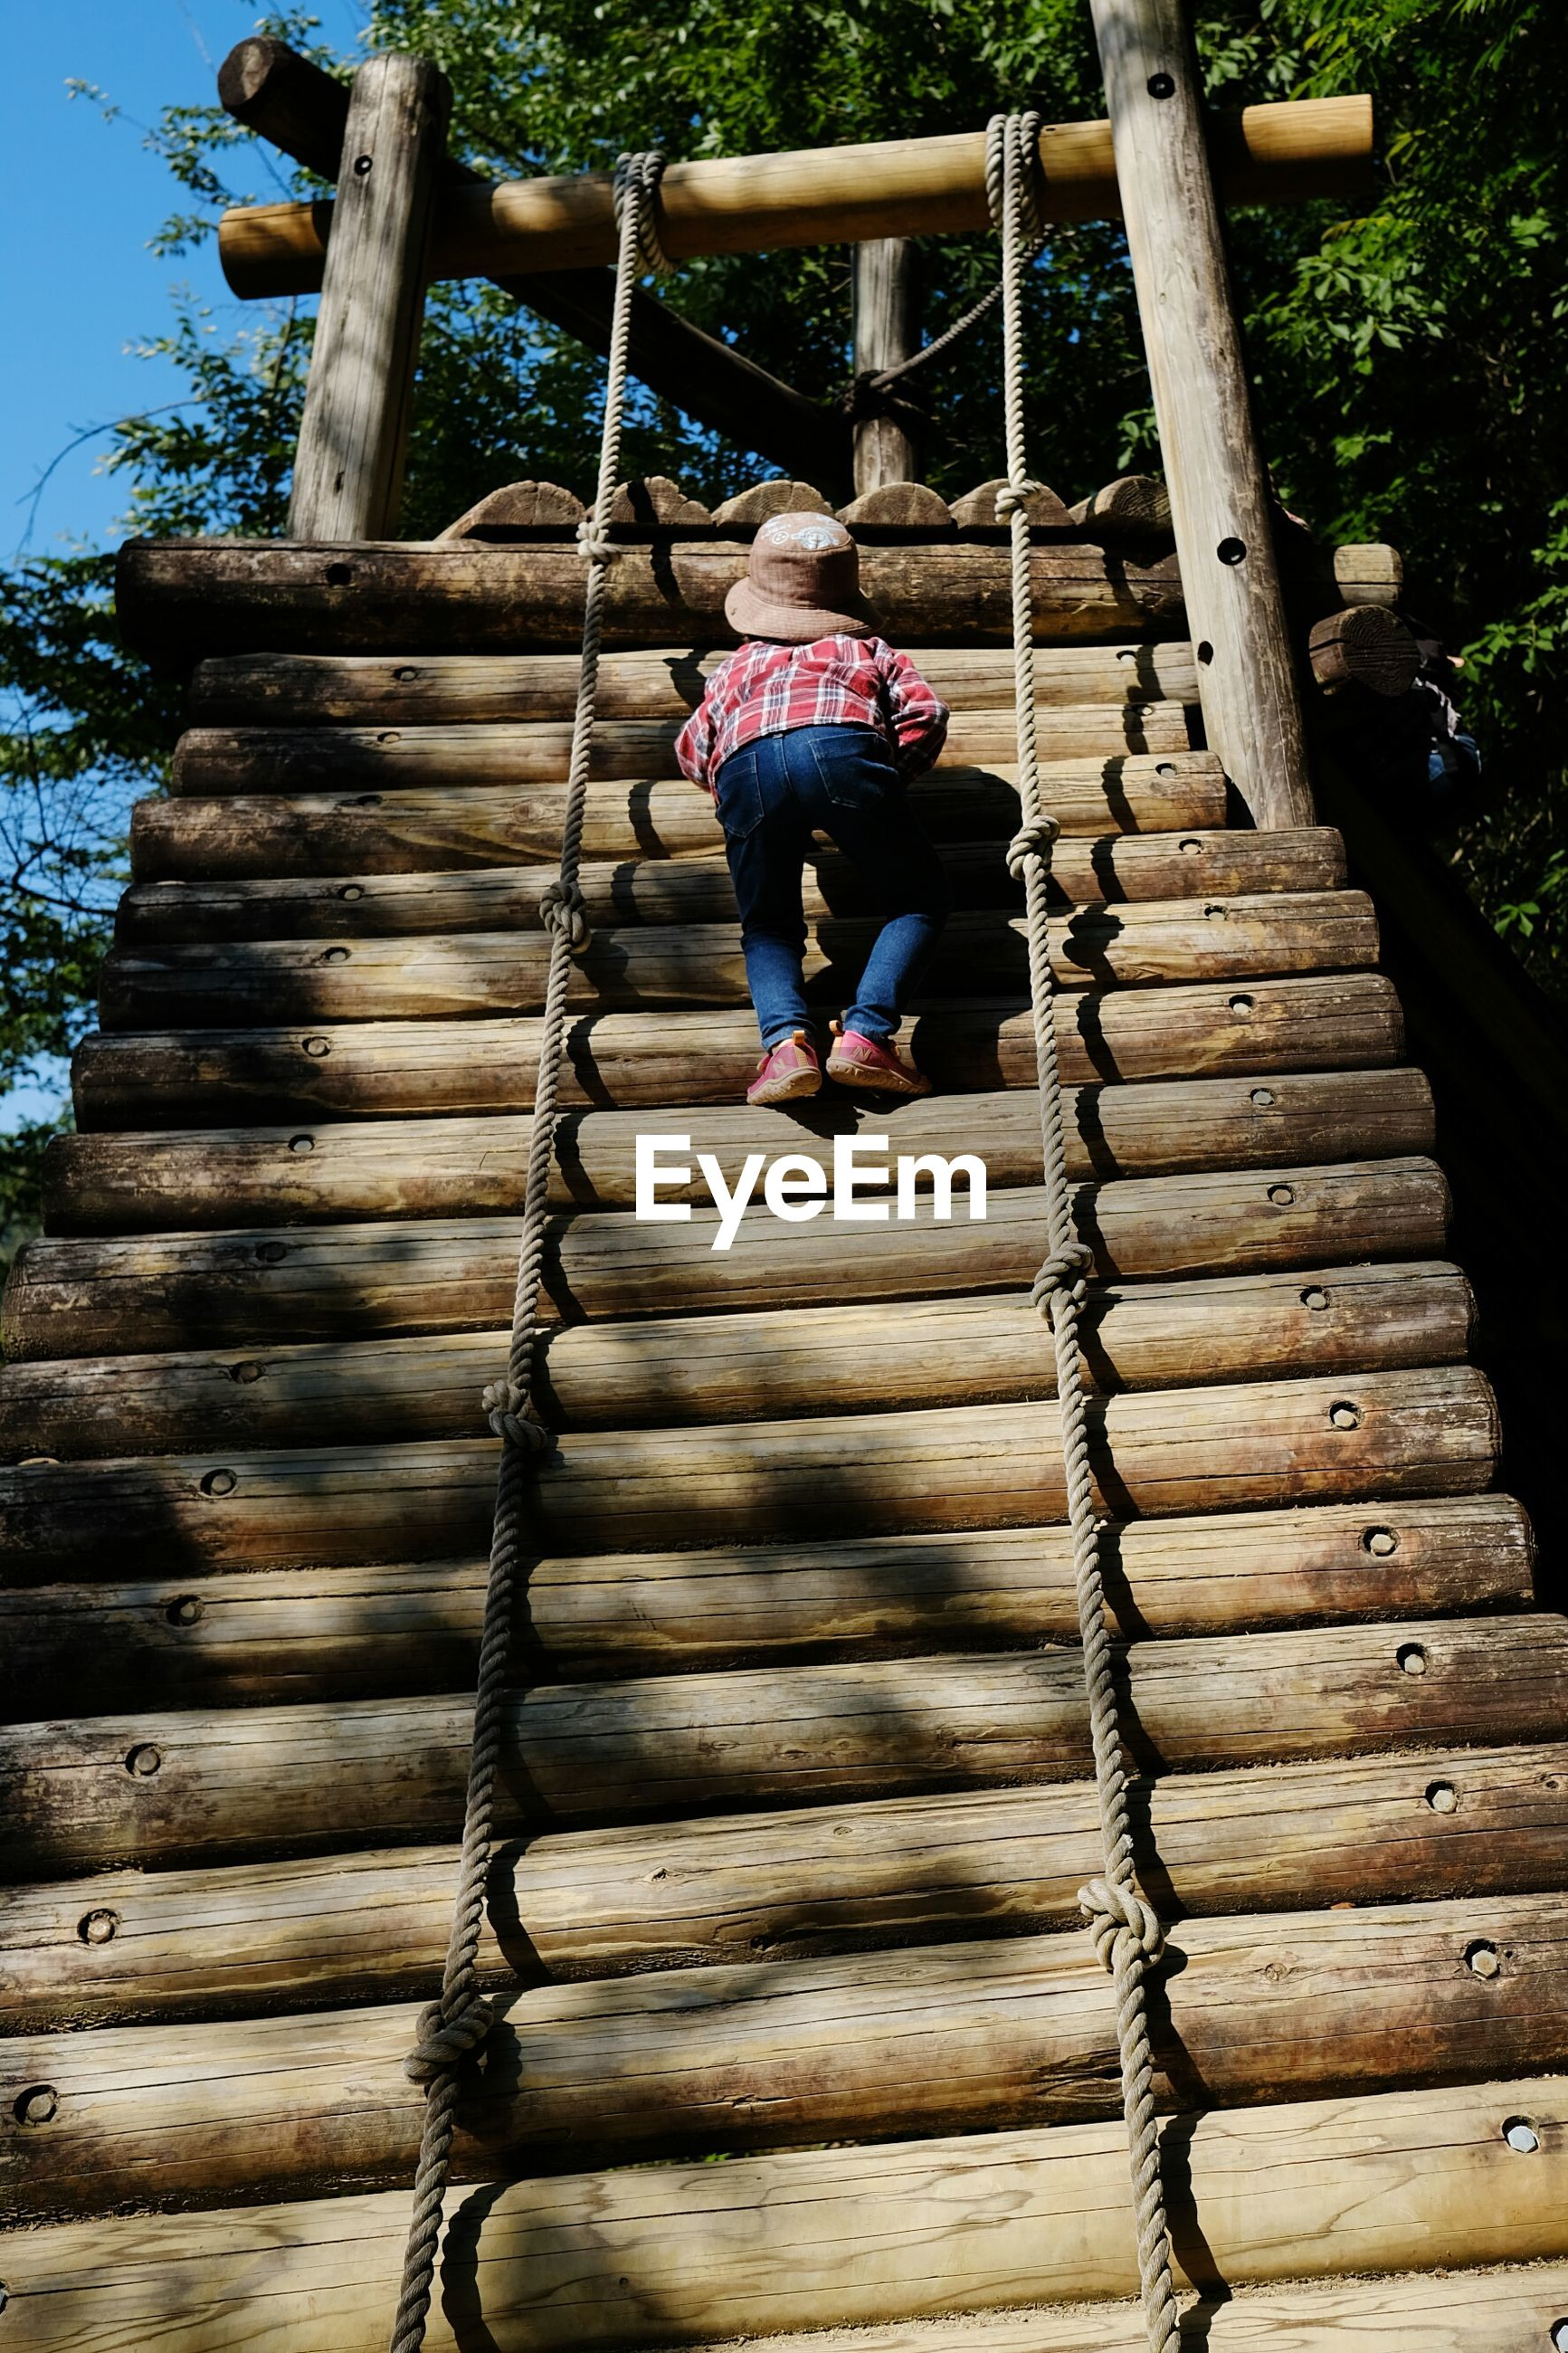 childhood, climbing, playground, full length, real people, rope, steps, girls, casual clothing, one person, day, swing, outdoors, leisure activity, elementary age, wood - material, jungle gym, outdoor play equipment, low angle view, playing, lifestyles, built structure, clambering, tree, rope swing, people